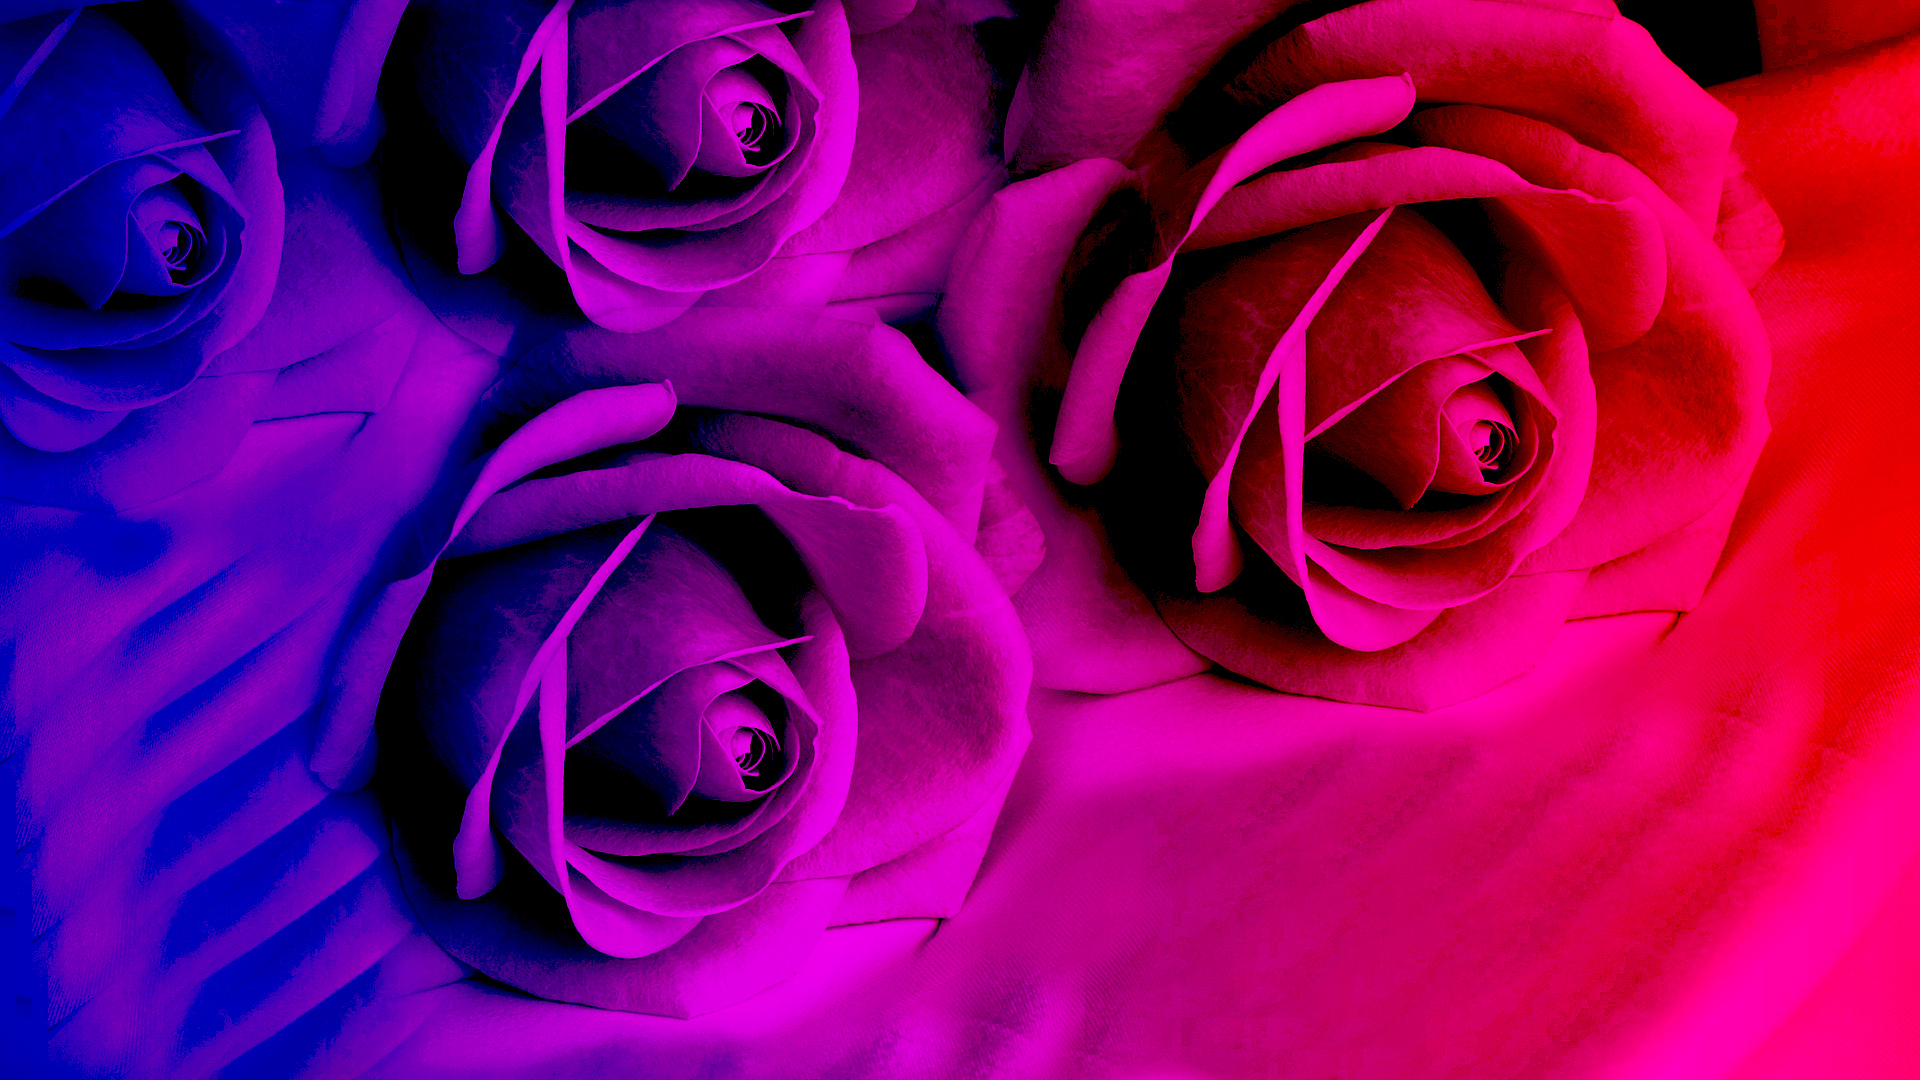 Bright Colored Flowers 27746 1920x1080 px ~ HDWallSource.com